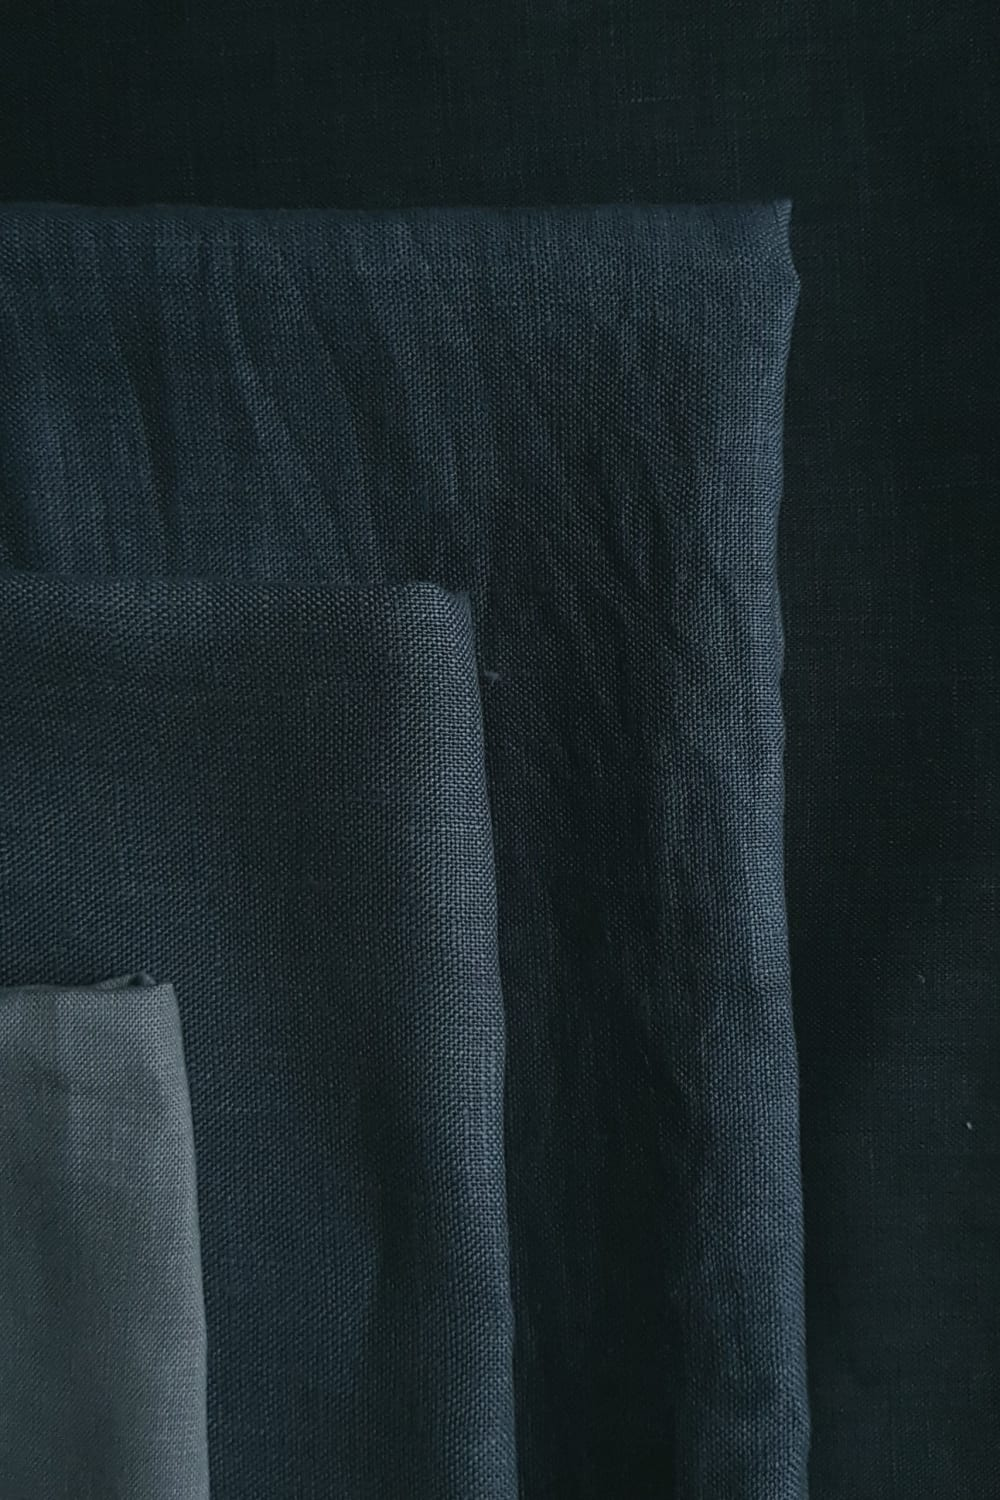 shades of Dylon black on Cut Couture linen hand dyed